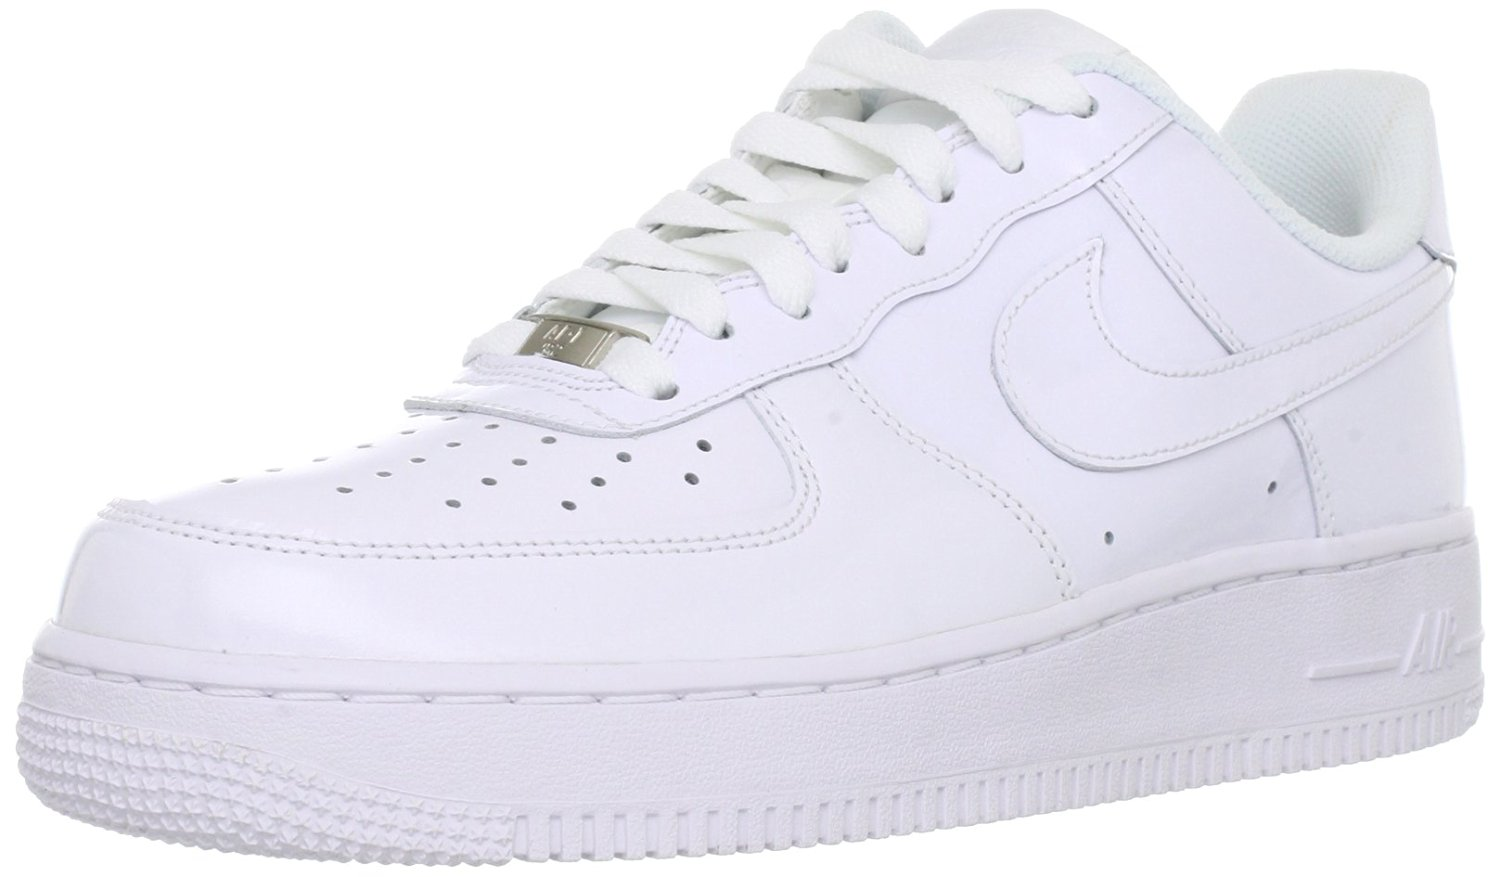 arrives fdc1e 0f754 Get Quotations · Nike Men s Air Force 1, WHITE WHITE-WHITE